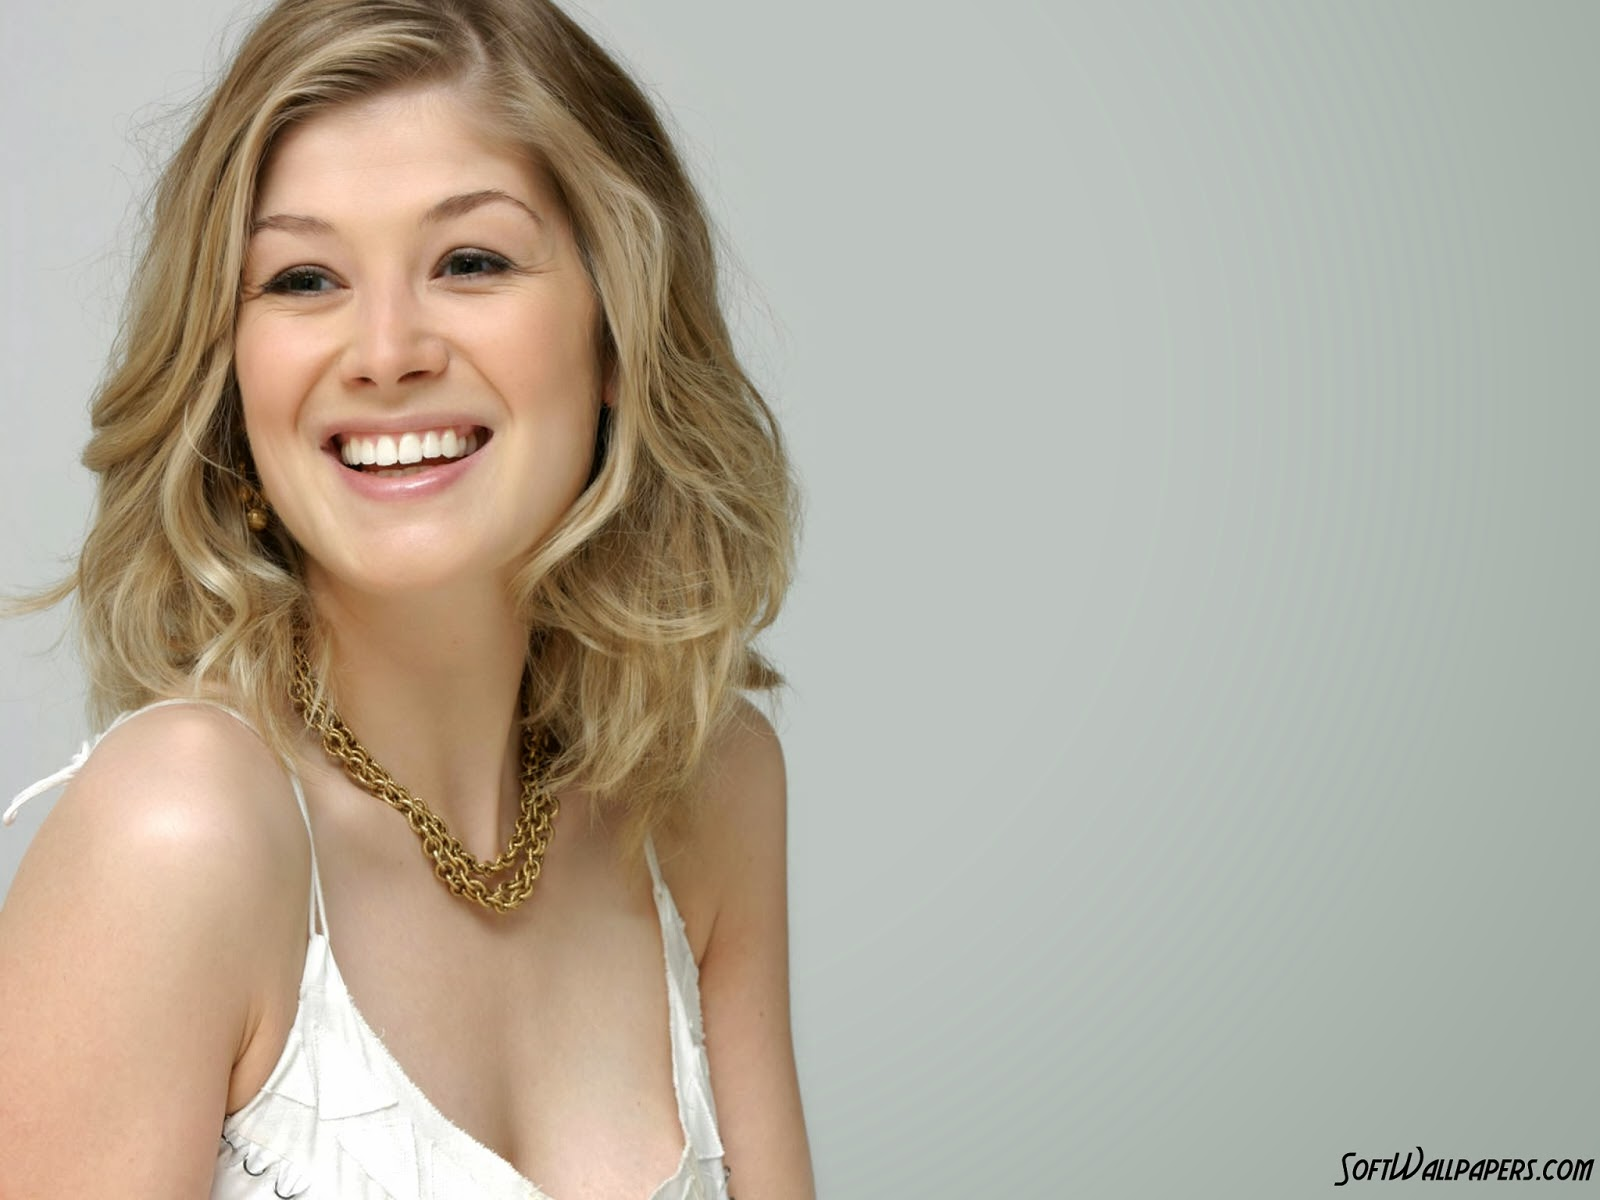 1600x1200 - Rosamund Pike Wallpapers 2